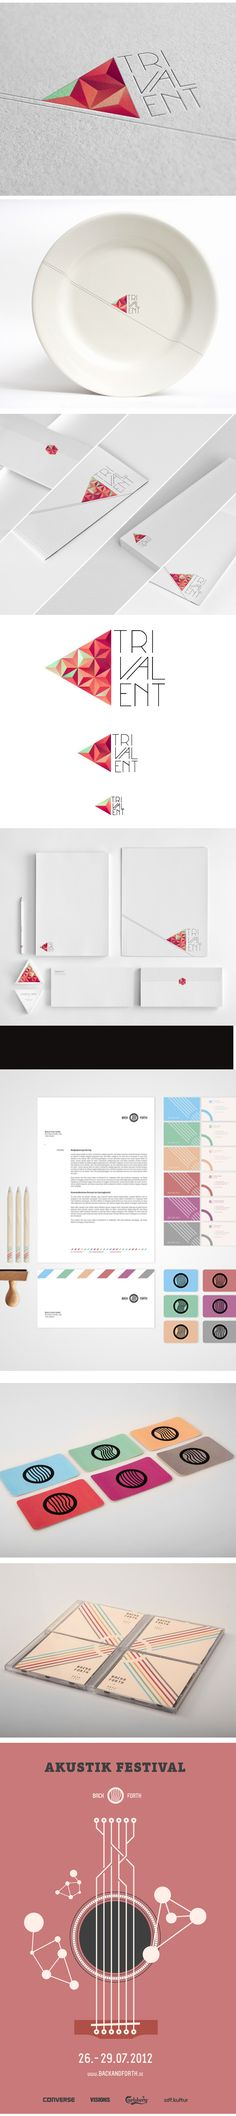 Great geometric shapes and colors